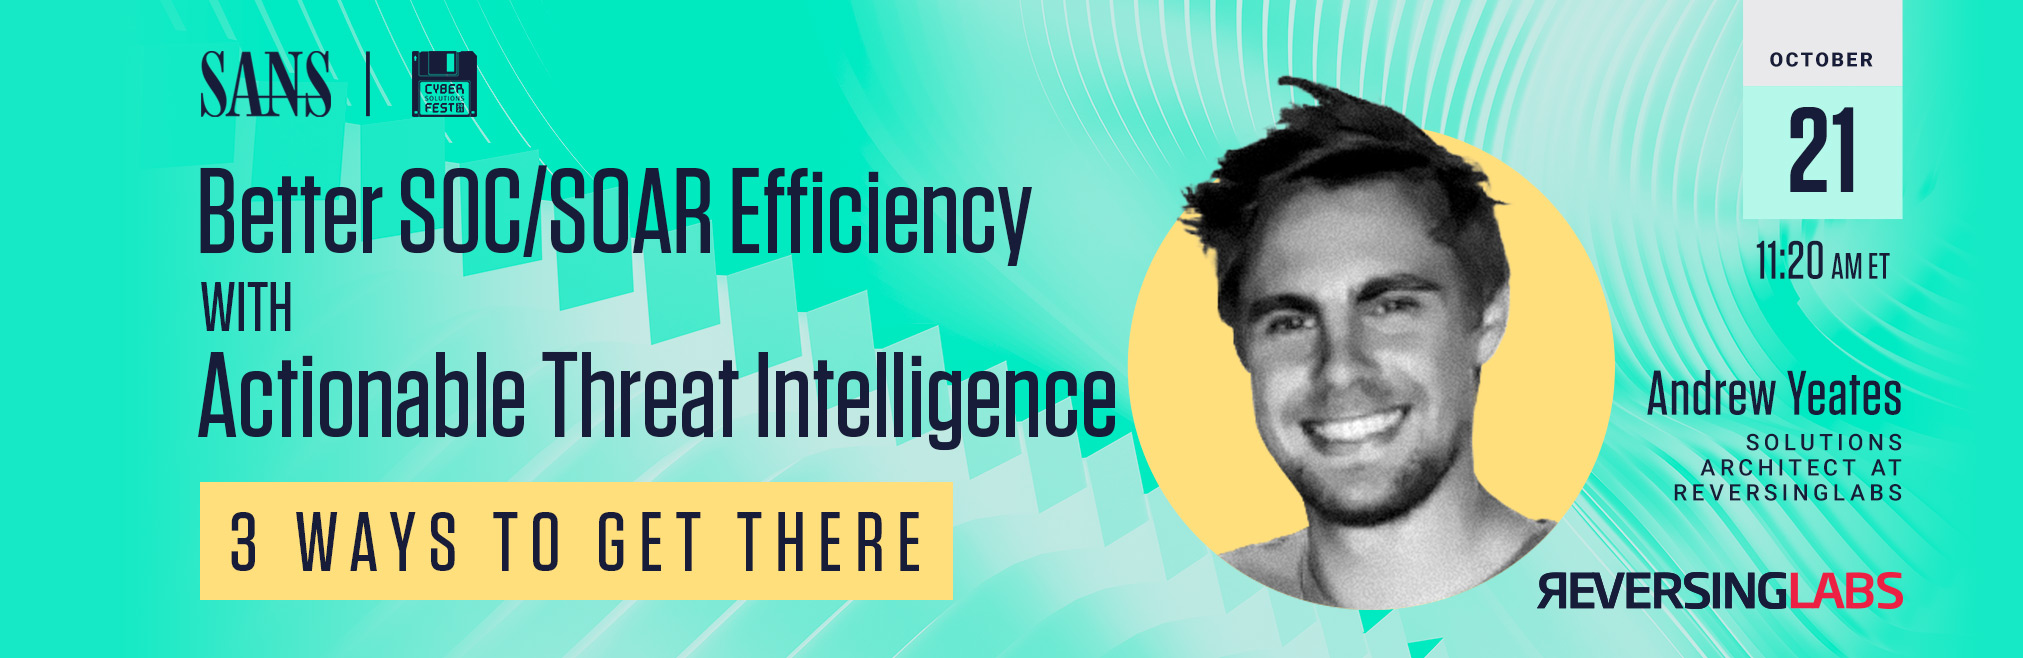 Better SOC/SOAR Efficiency with Actionable Threat Intelligence: 3 Ways to Get There